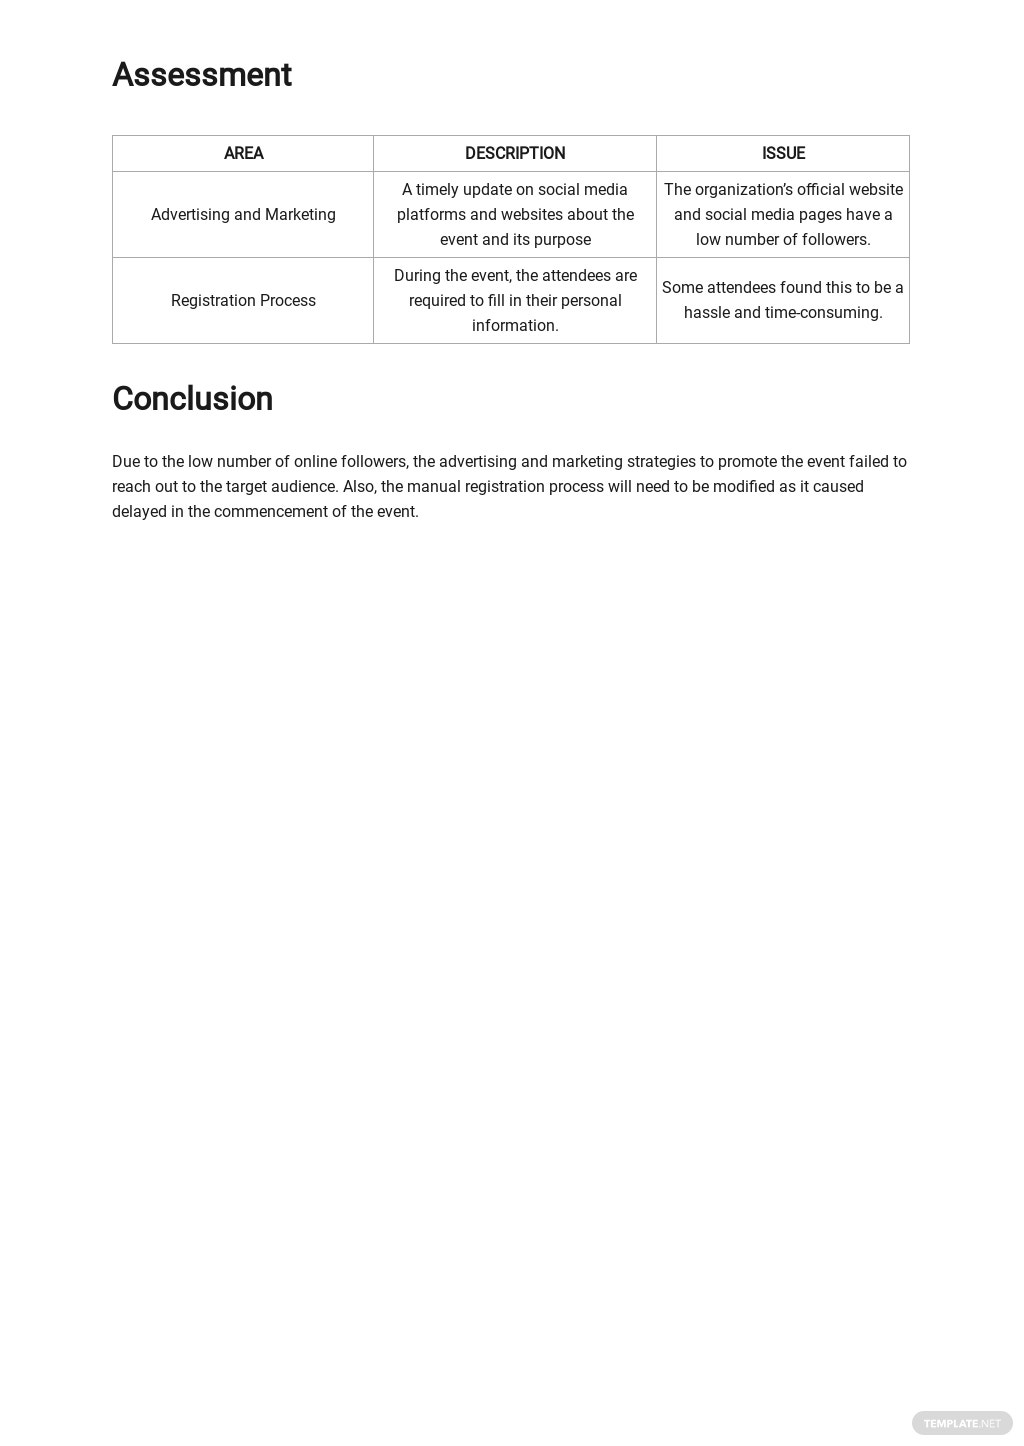 After Action Review Report Template 2.jpe